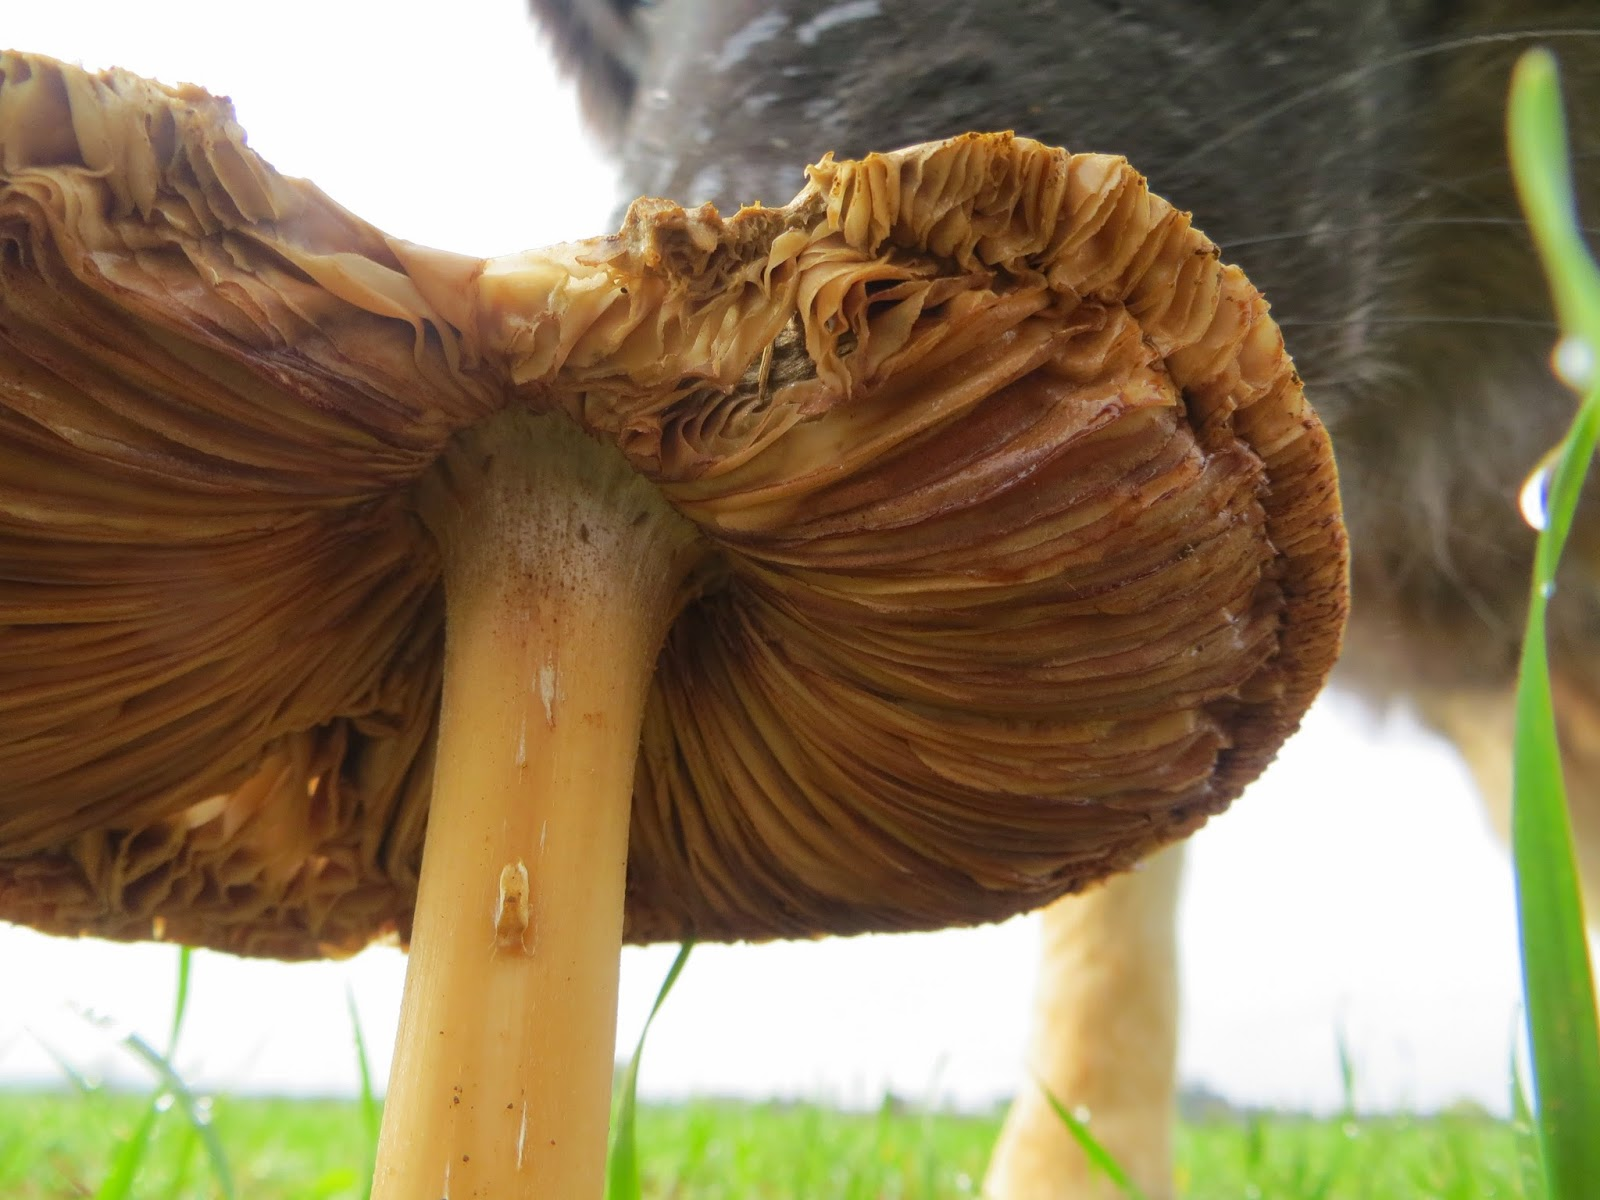 mushrooms, poisonous? edible? Trojan, dogs, fields.